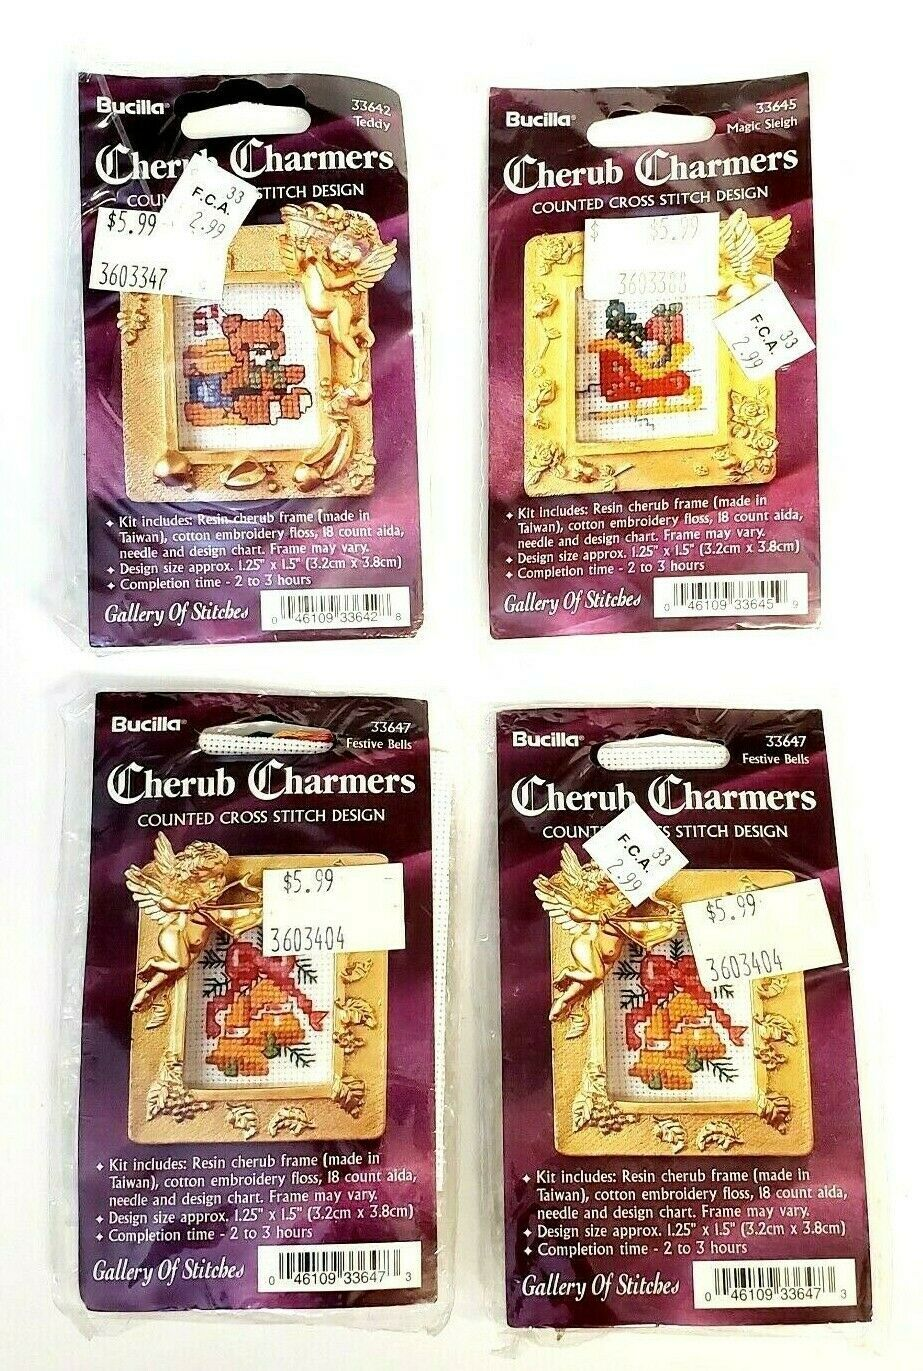 Lot 4 Vintage Bucilla Christmas Cherub Charmers Cross Stitch Kit w/ Resin Frame - $18.95